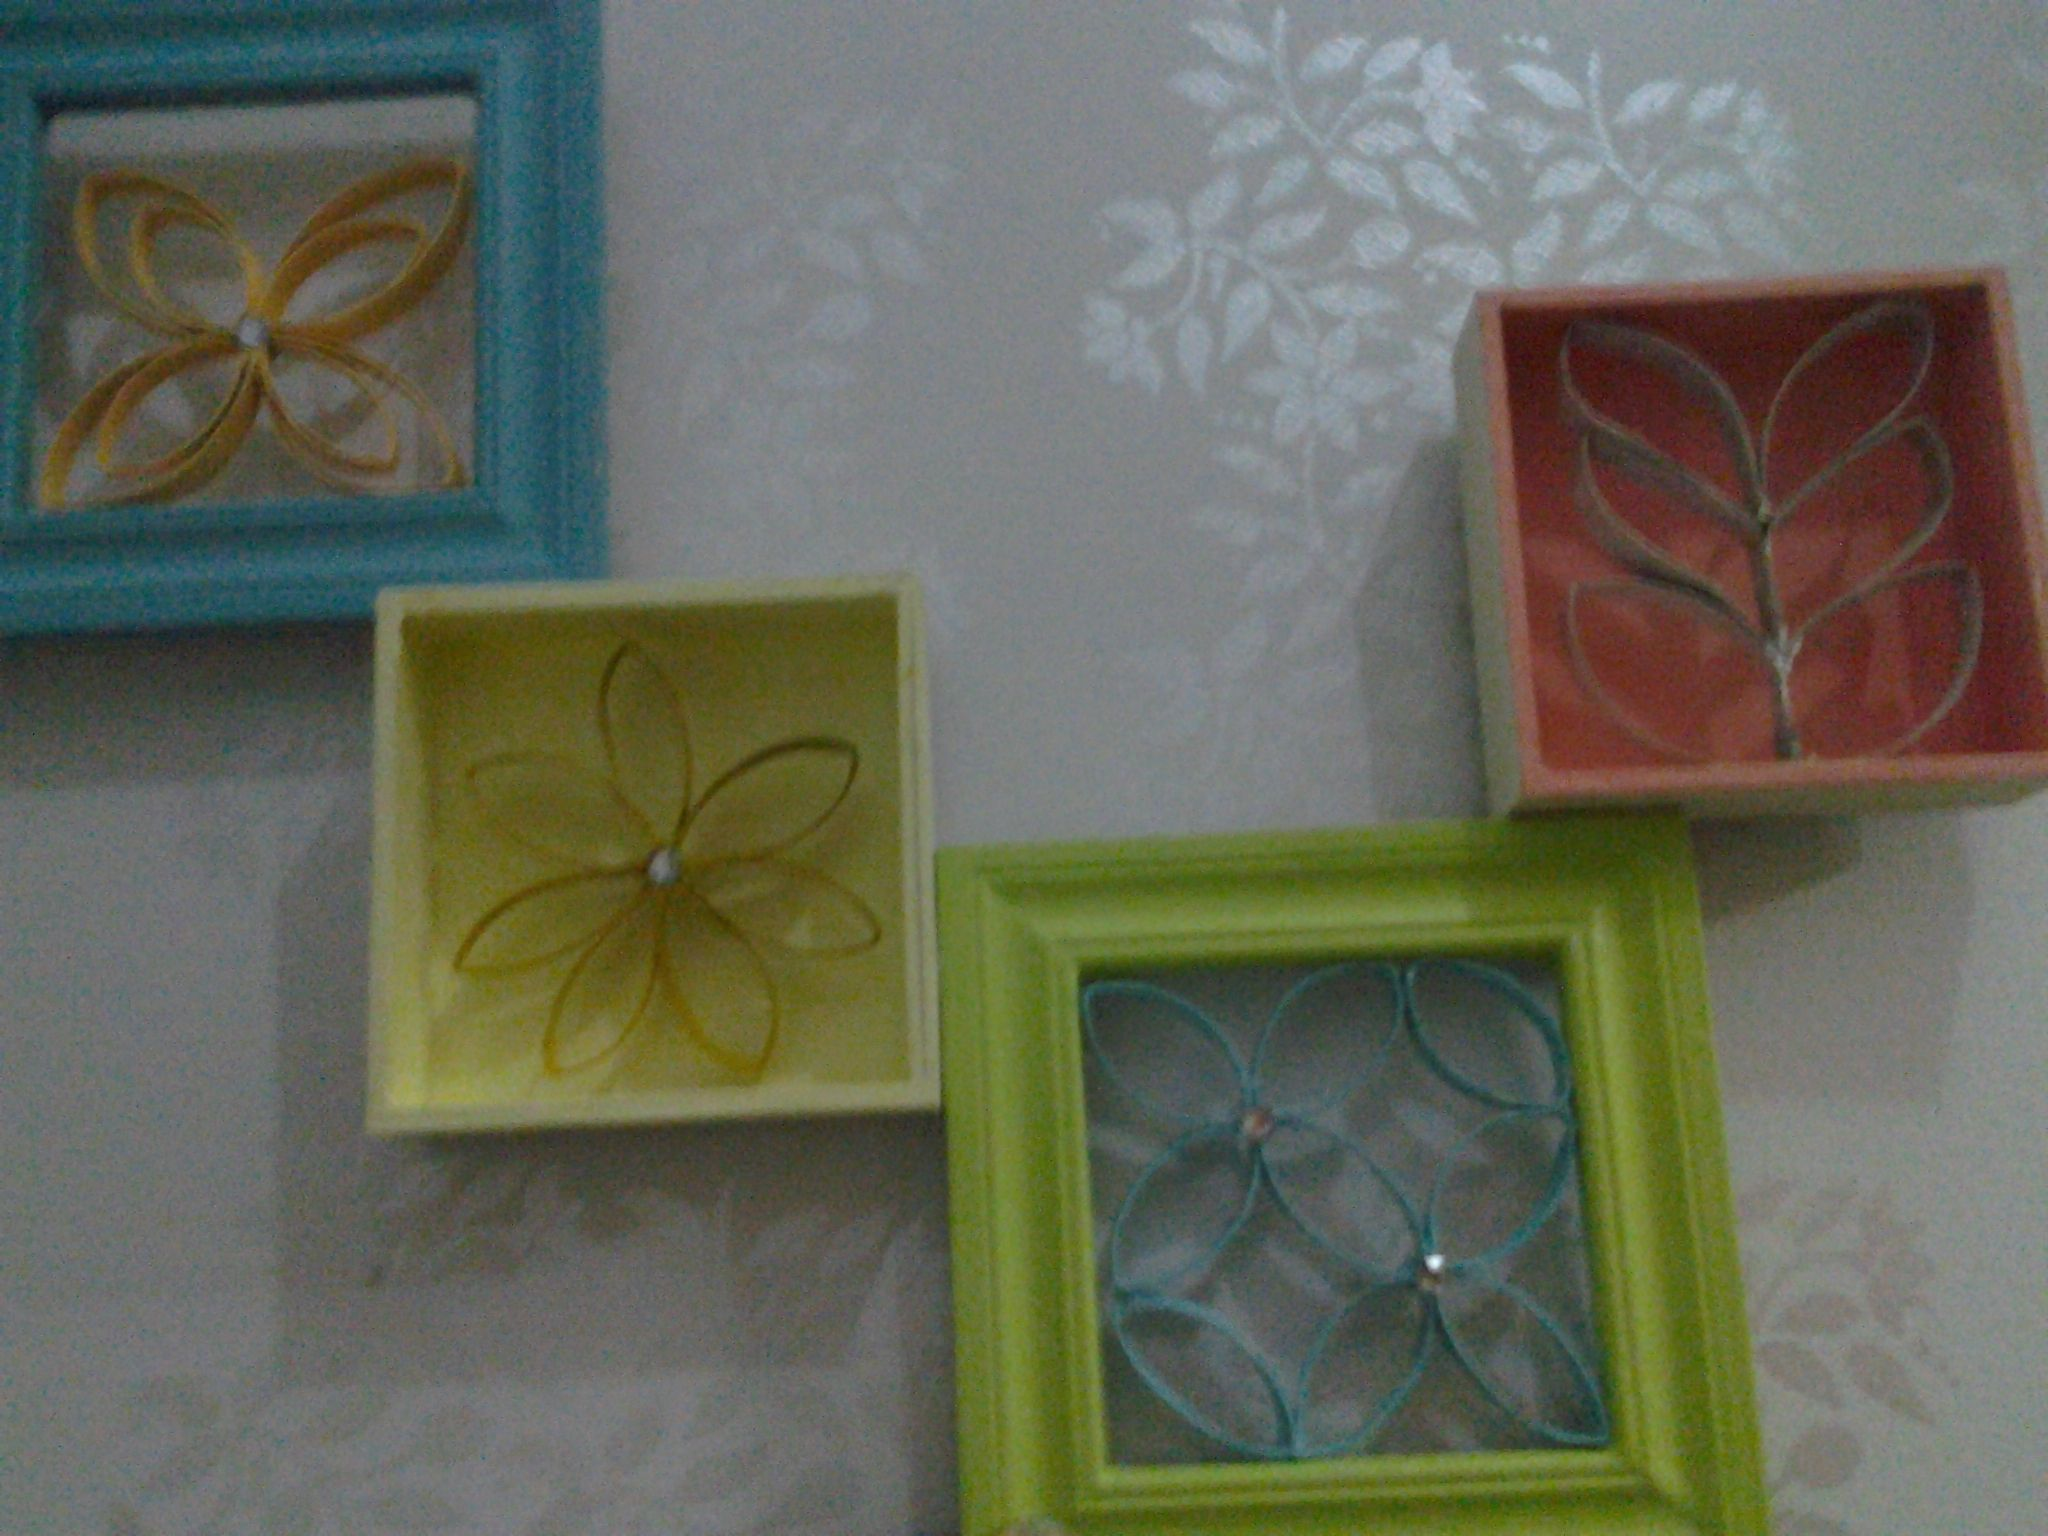 I made thIs wall art wIth two shadow boxes pIcture frames some paInt and toIlet paper rolls